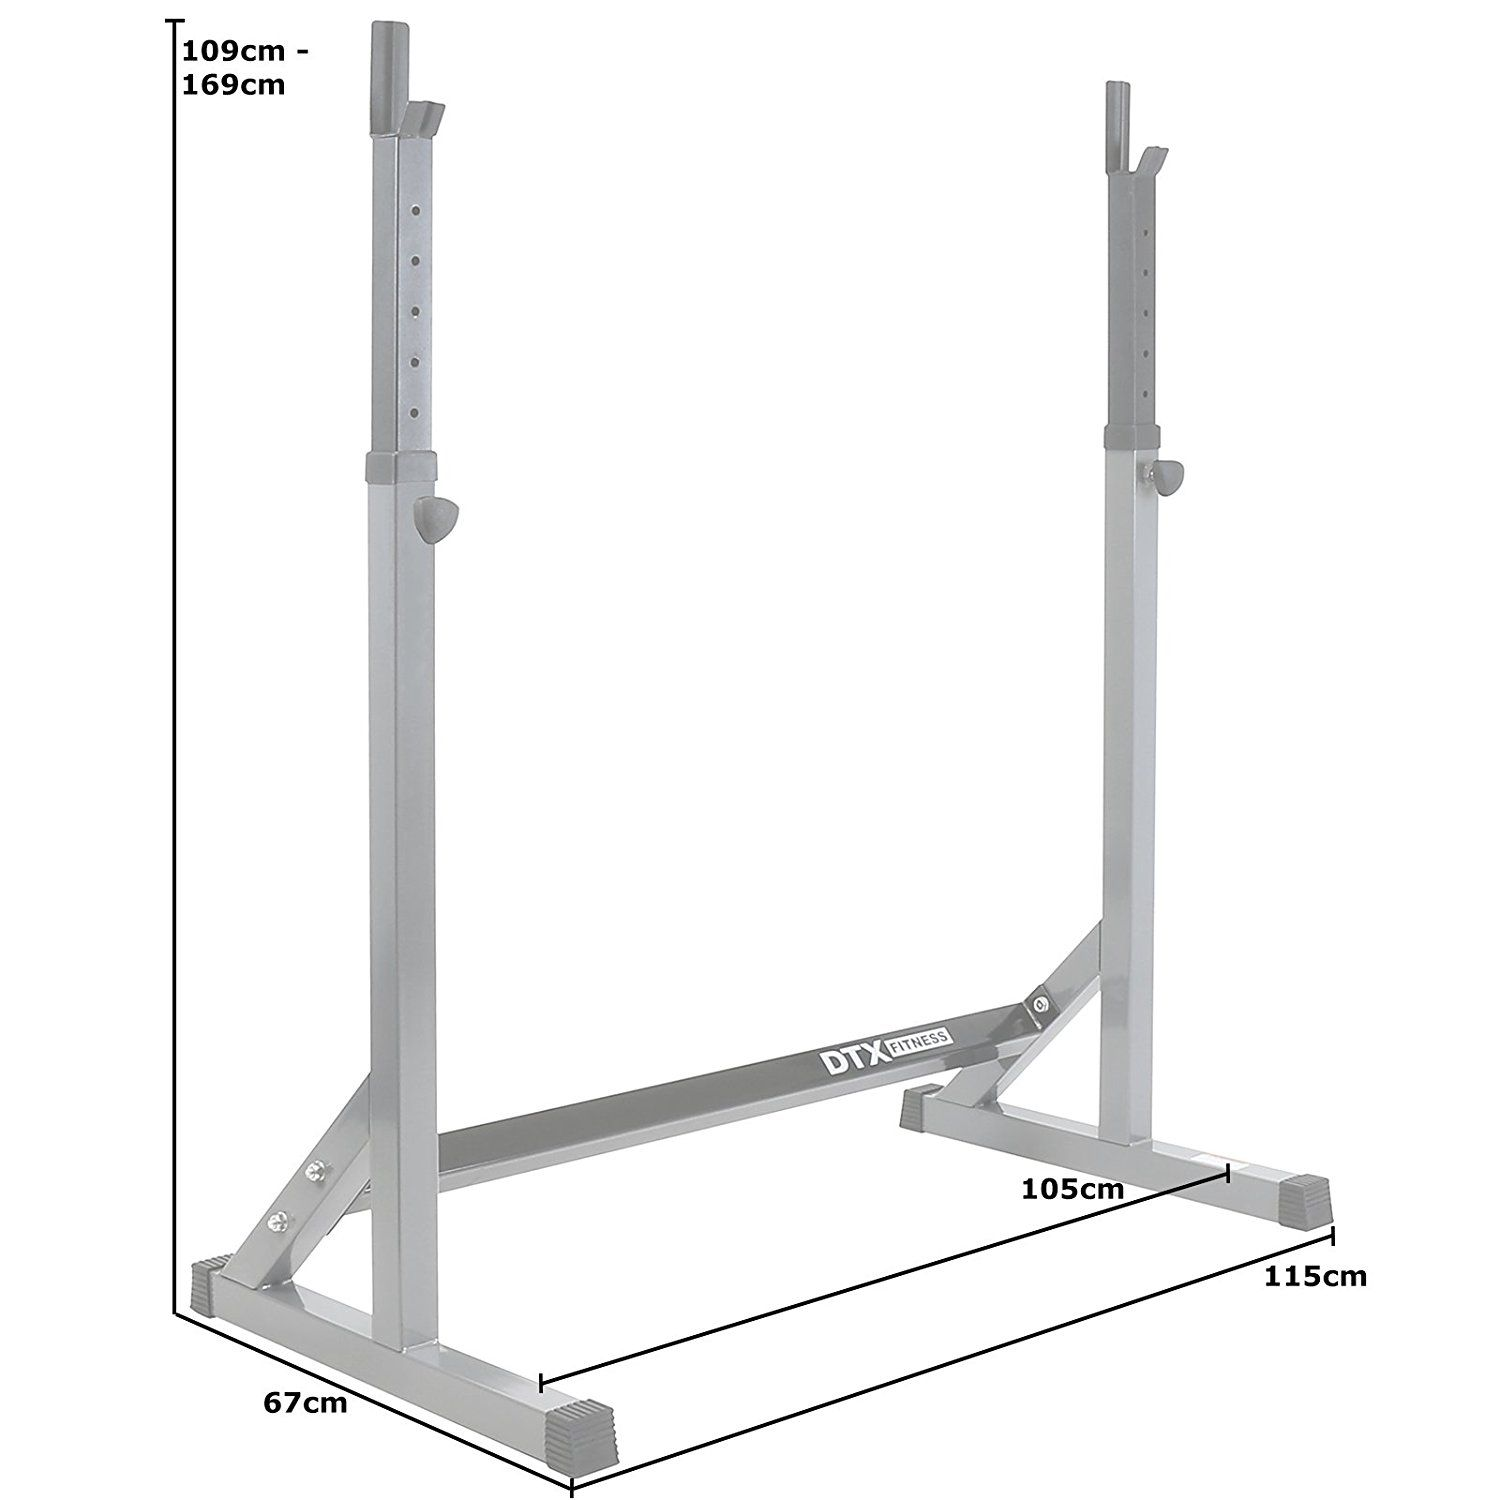 DTX Fitness Seated Row Cable Attachment with Grips